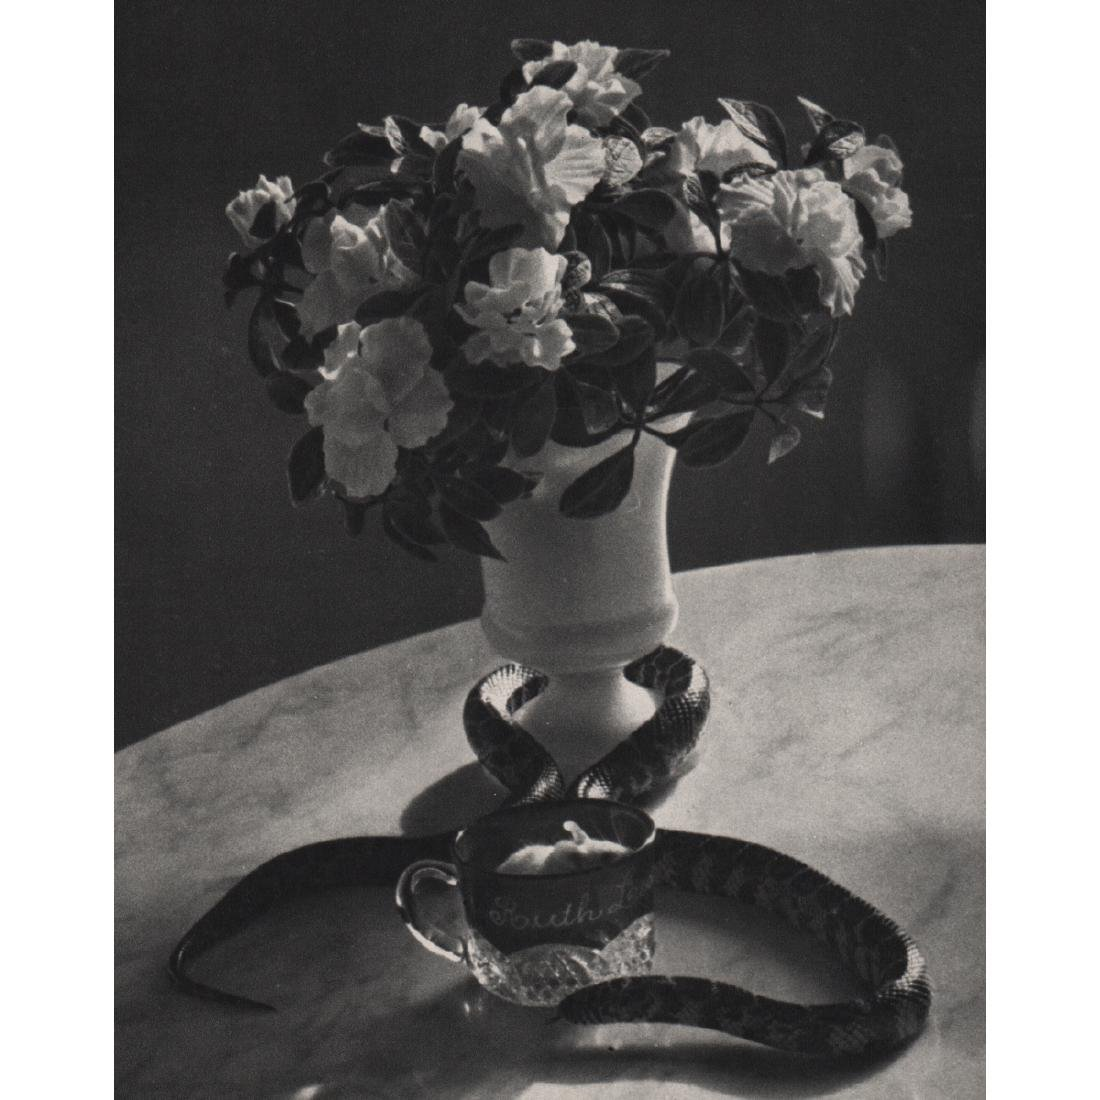 ANDRE KERTESZ - Still Life with Snake, 1960